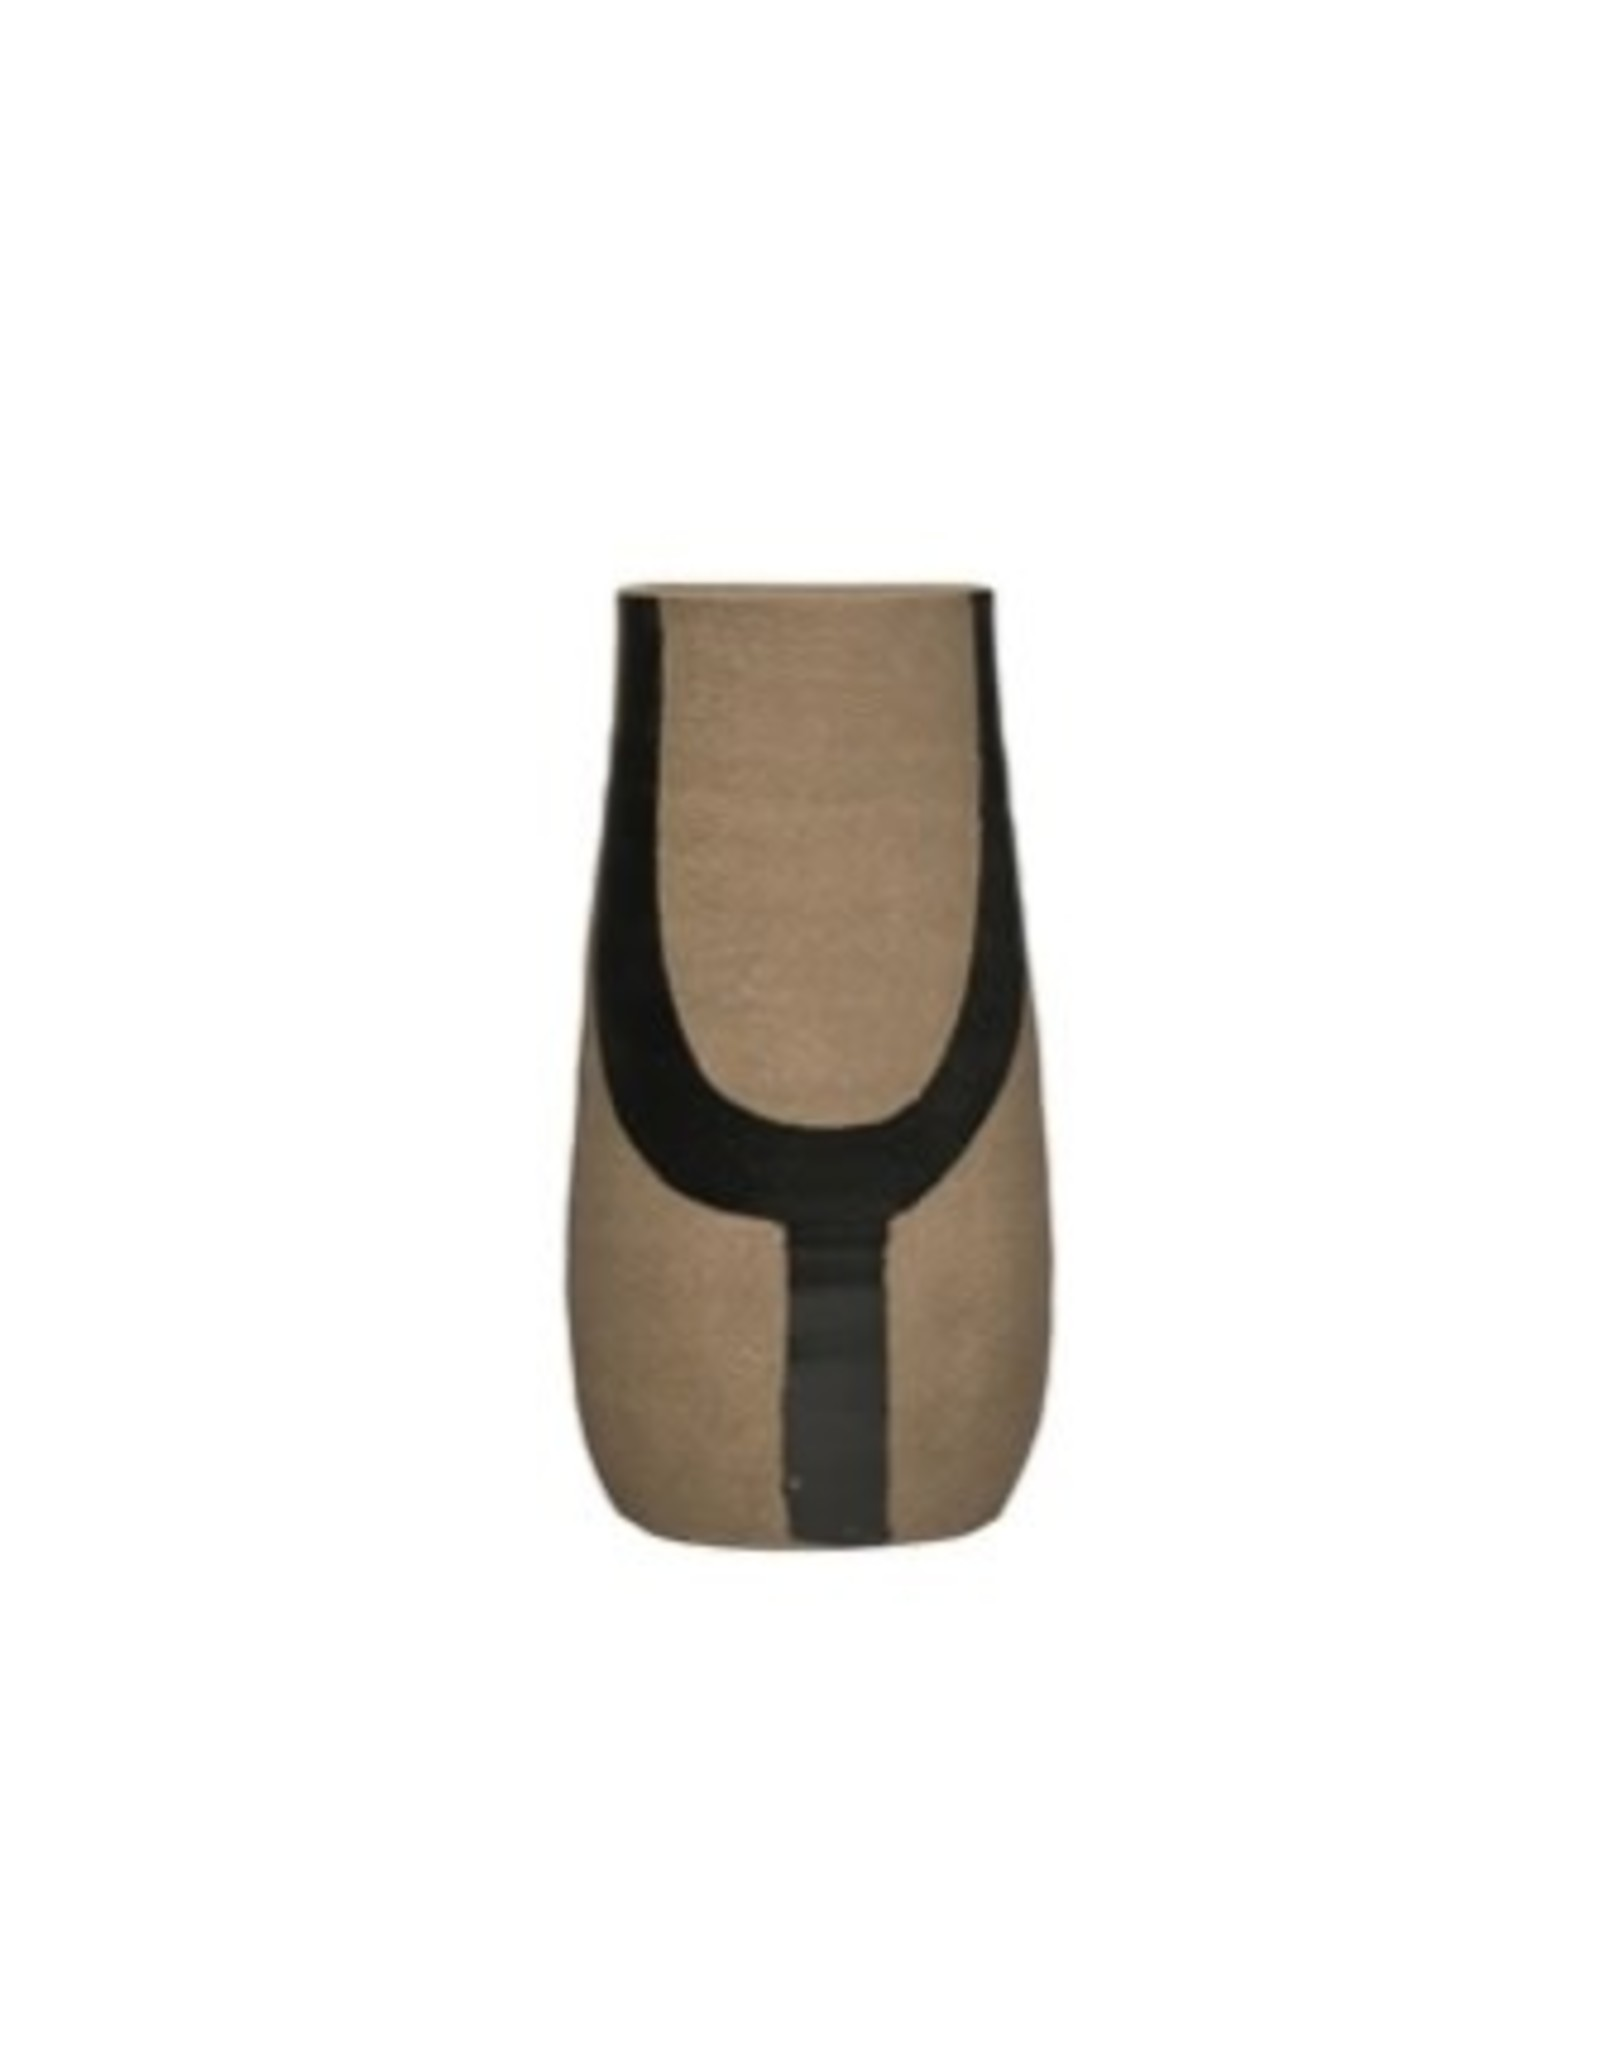 Creative Co-op Terracotta Vase, Hand Painted Gray/Black